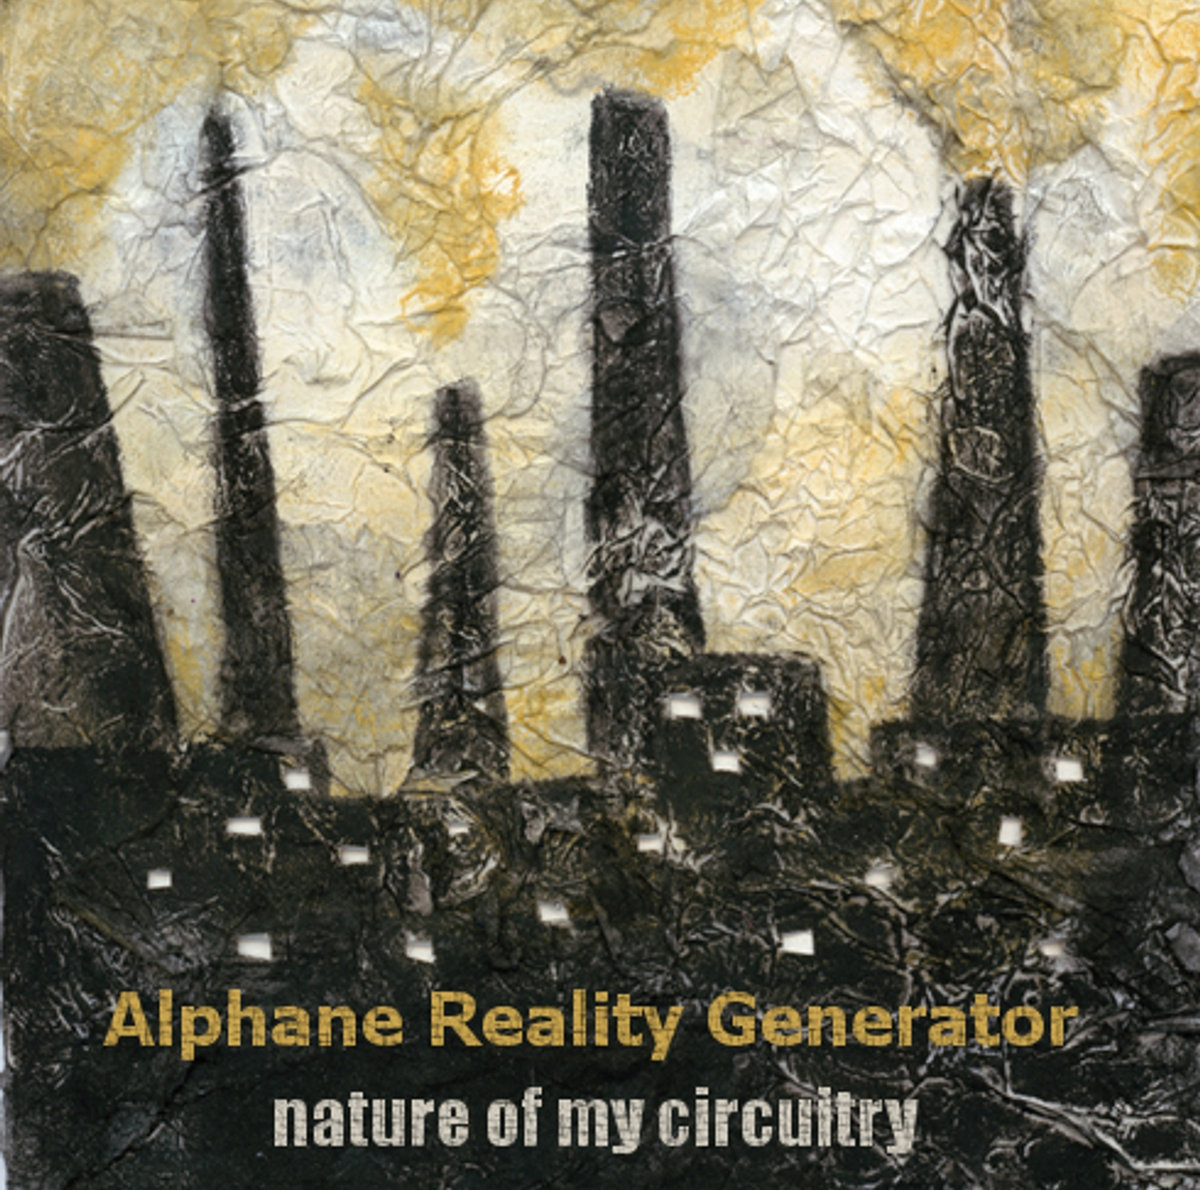 Alphane Reality Generator artwork